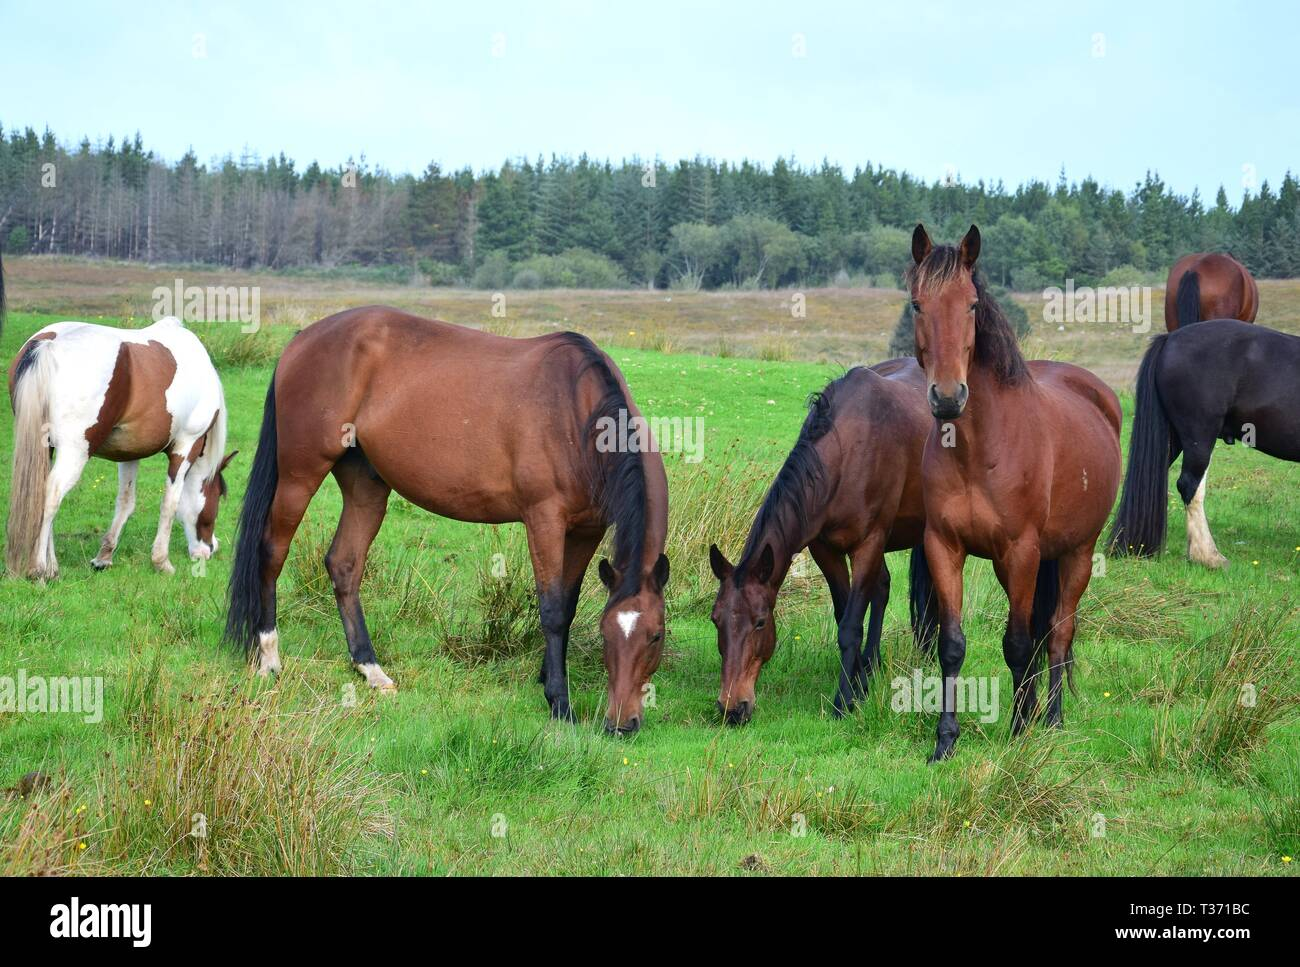 A group of bay horses on a meadow in Ireland. One is looking, two are grazing. Irish landscape in the background. Stock Photo